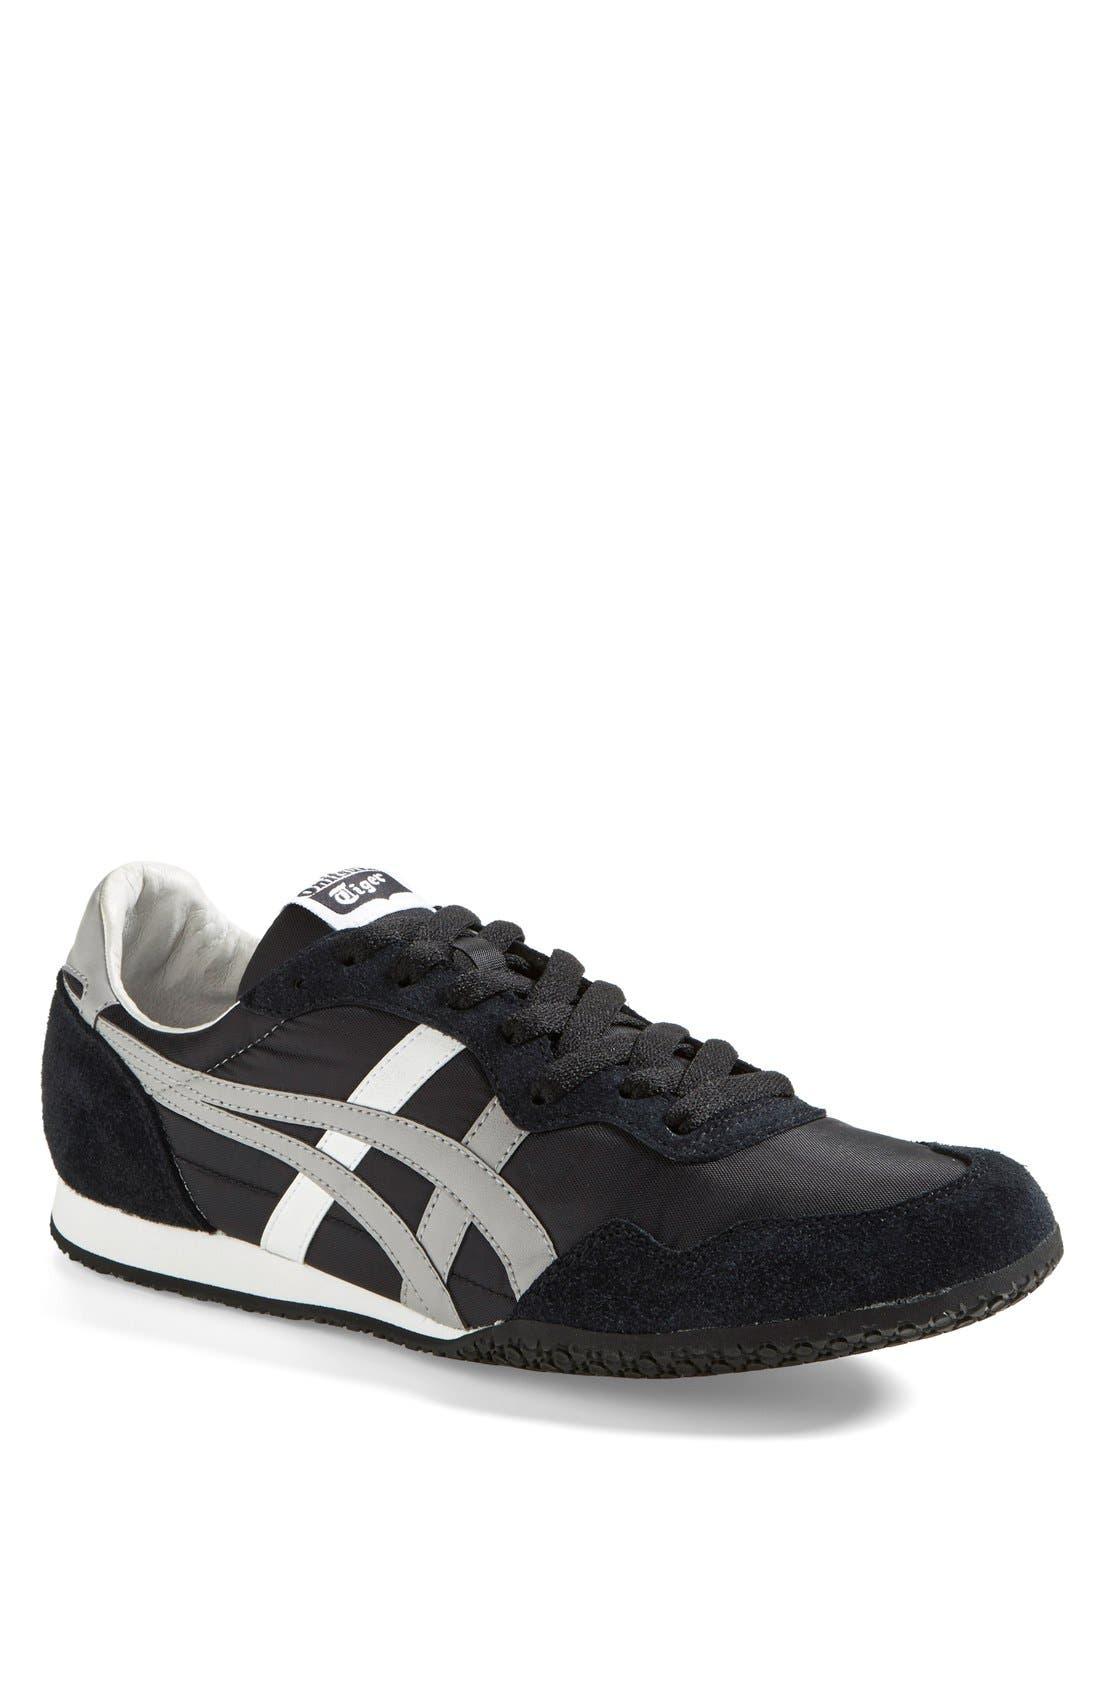 new style 8b3f0 94fc2 onitsuka tiger casual shoes